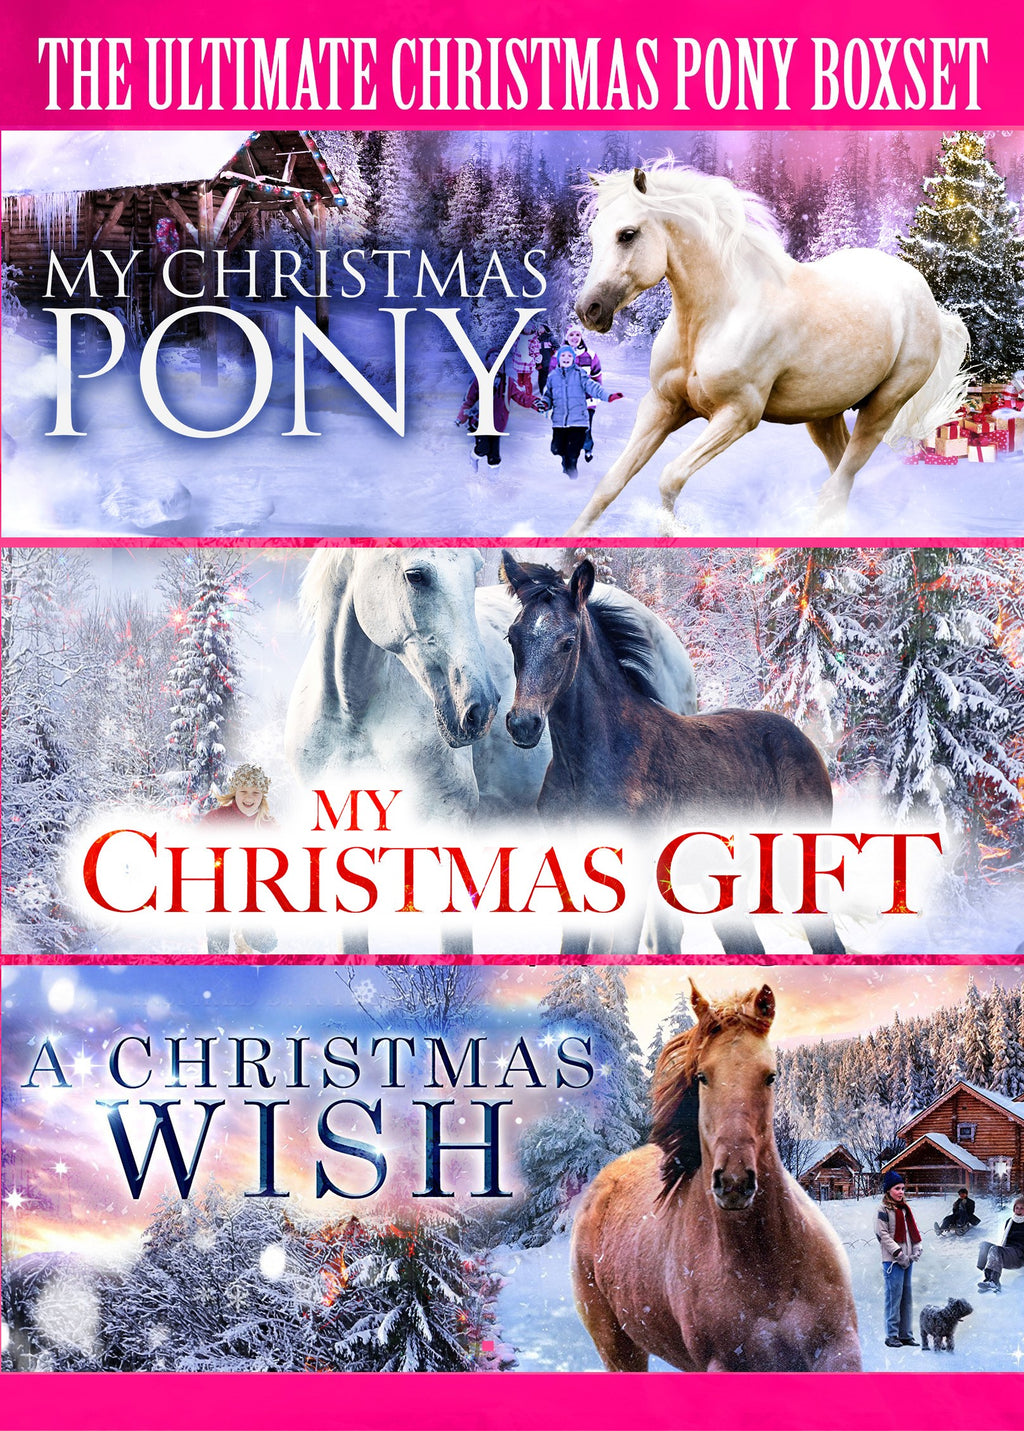 Christmas Pony Boxset